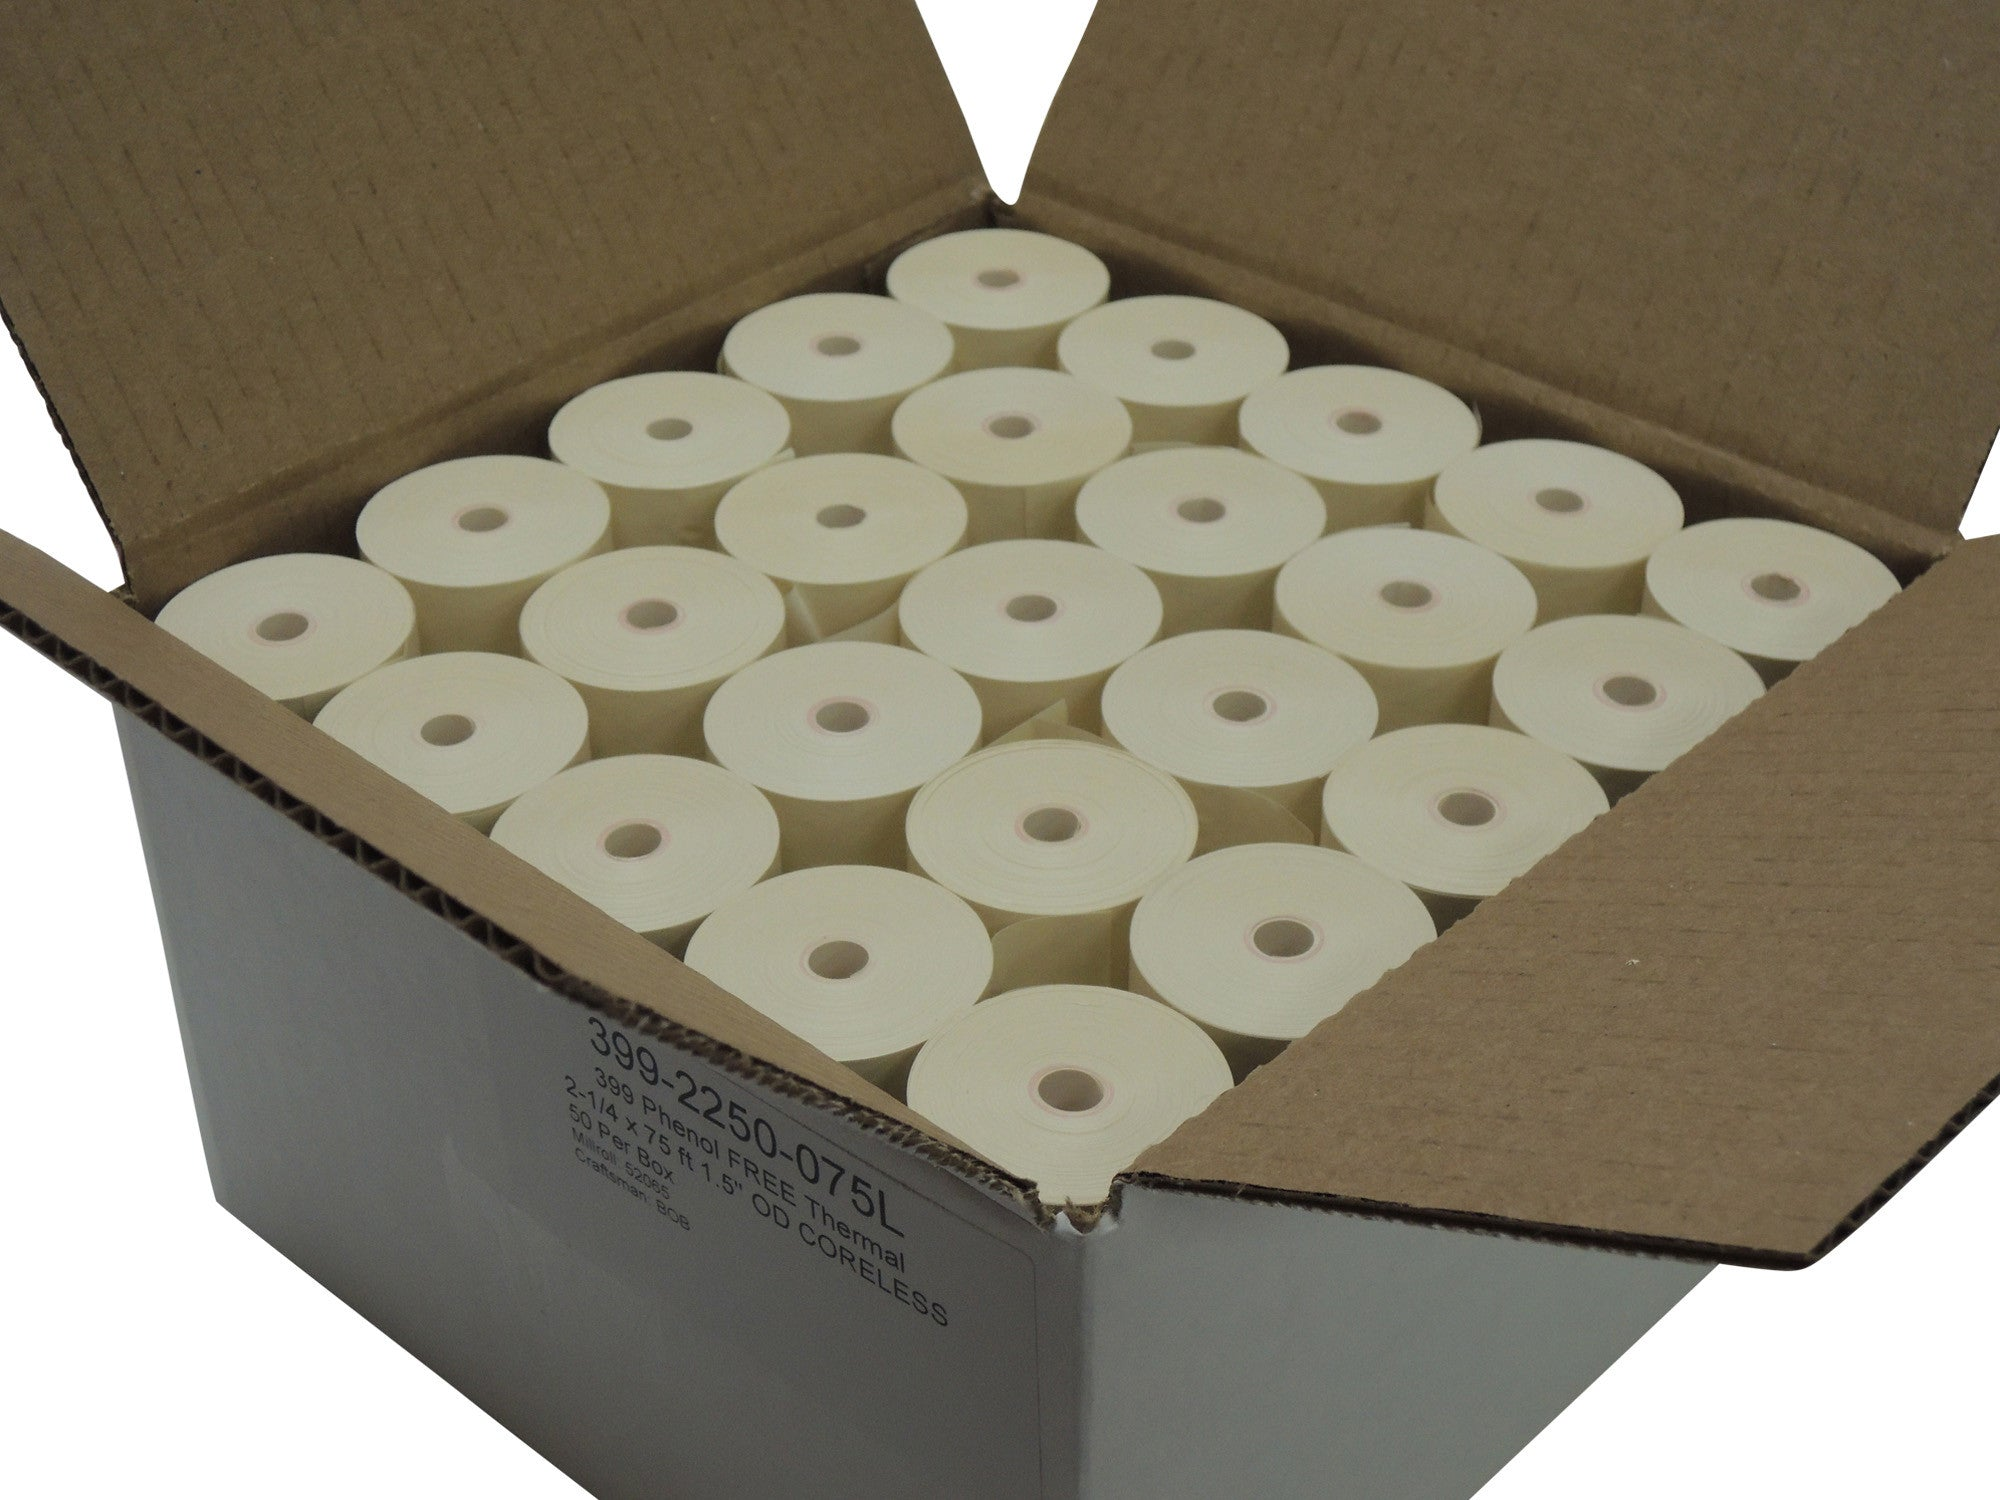 "Phenol Free Thermal Paper 2 1/4"" x 75 feet, 1.5"" / 38mm diameter, CORELESS, 50 rolls"